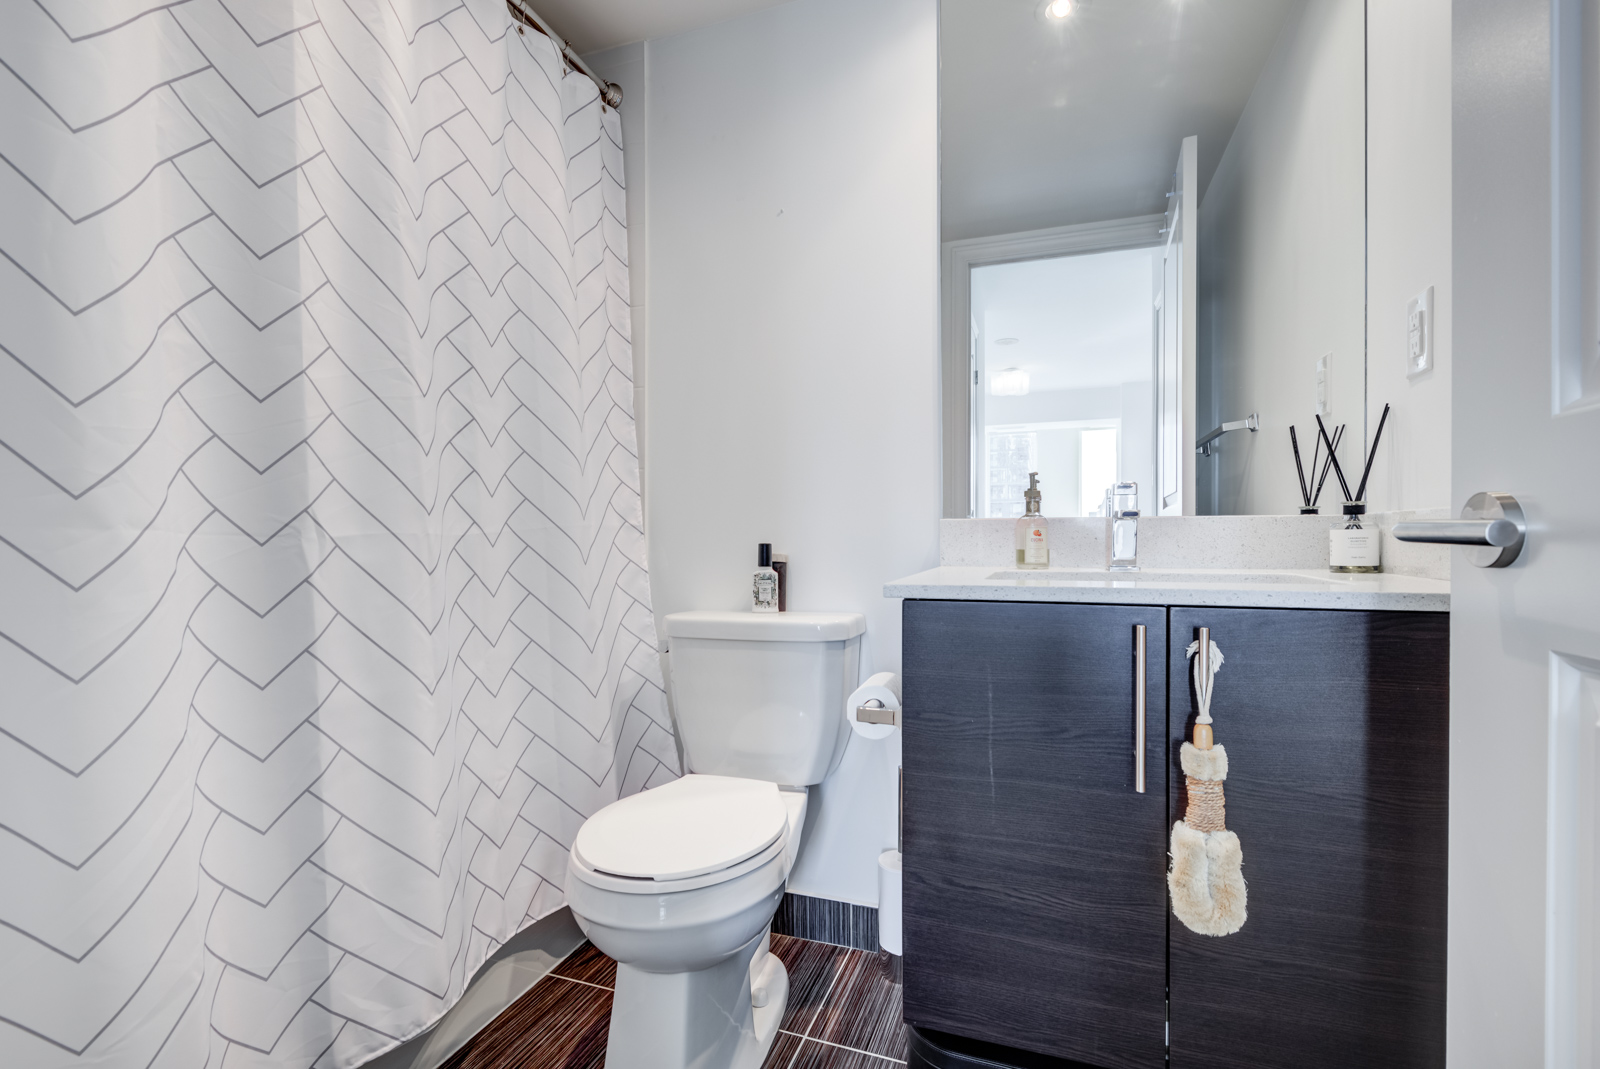 Master bath with closed white curtain, toilet and large vanity.